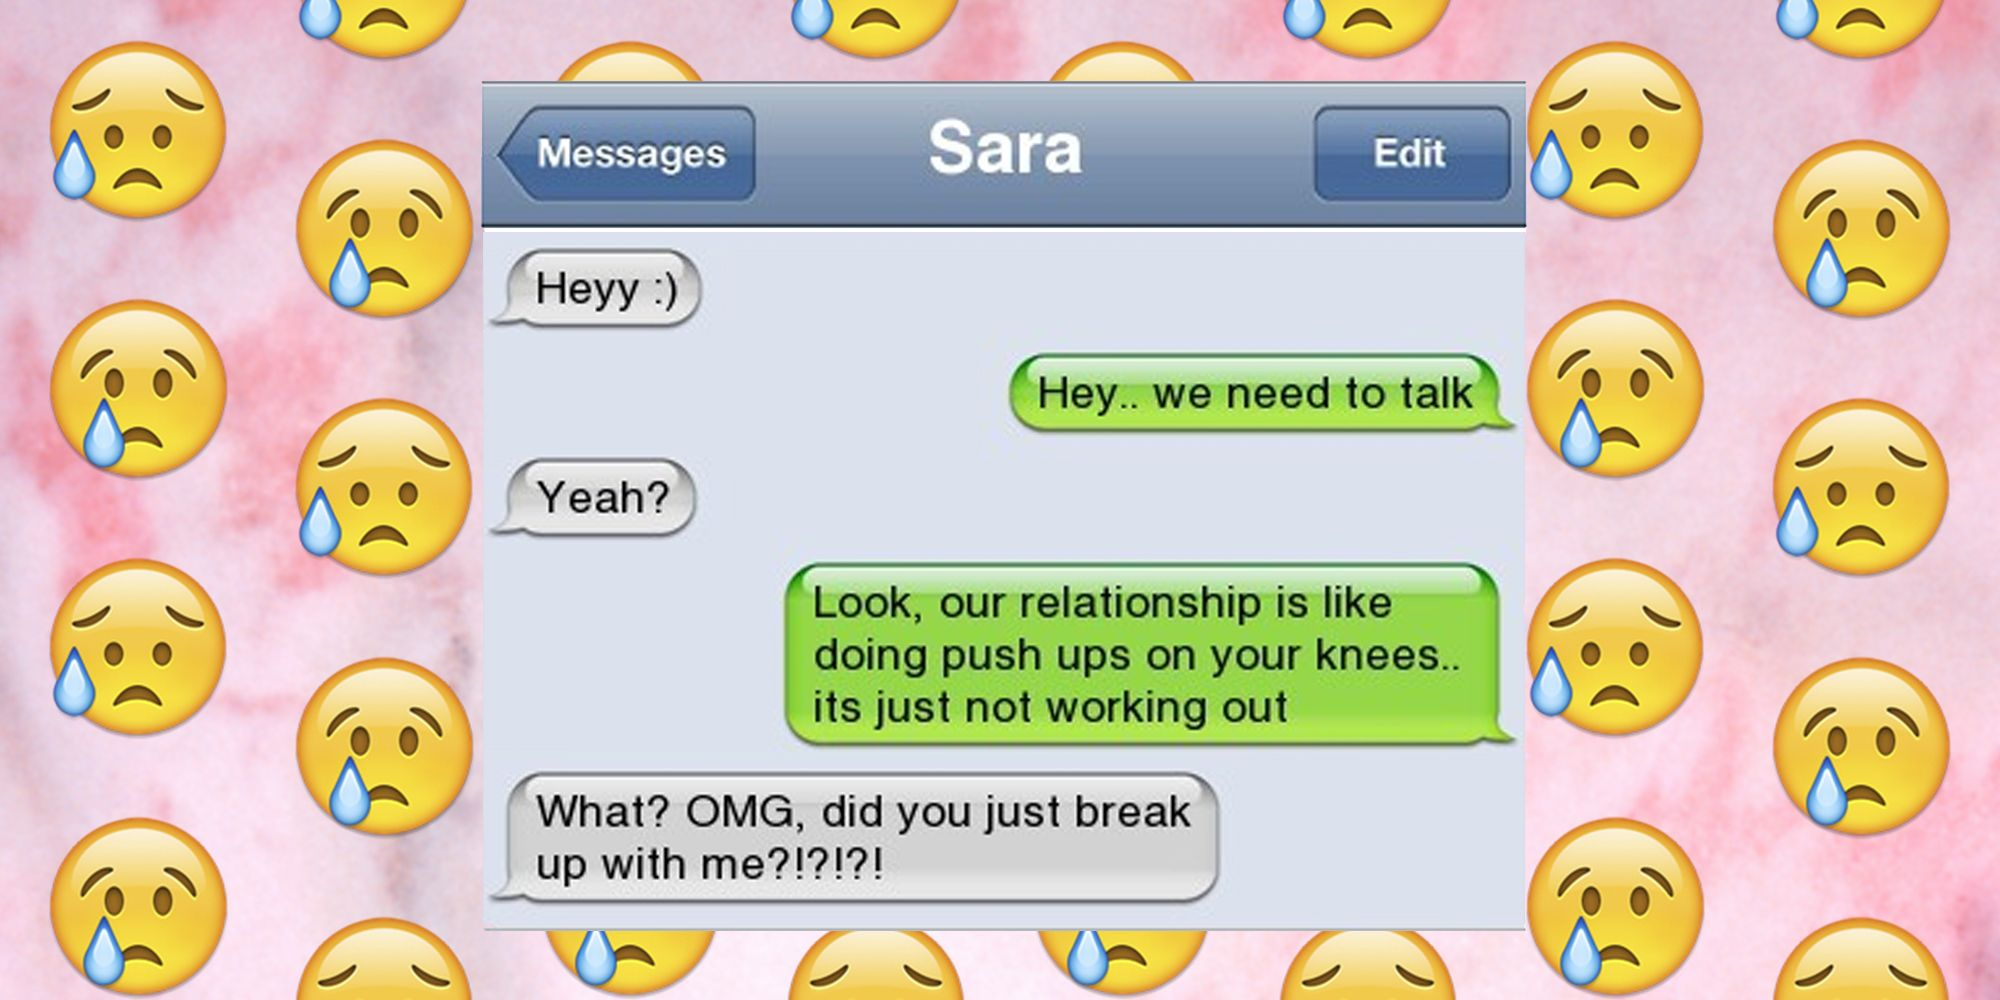 How To Breakup Over Text Message A Guide